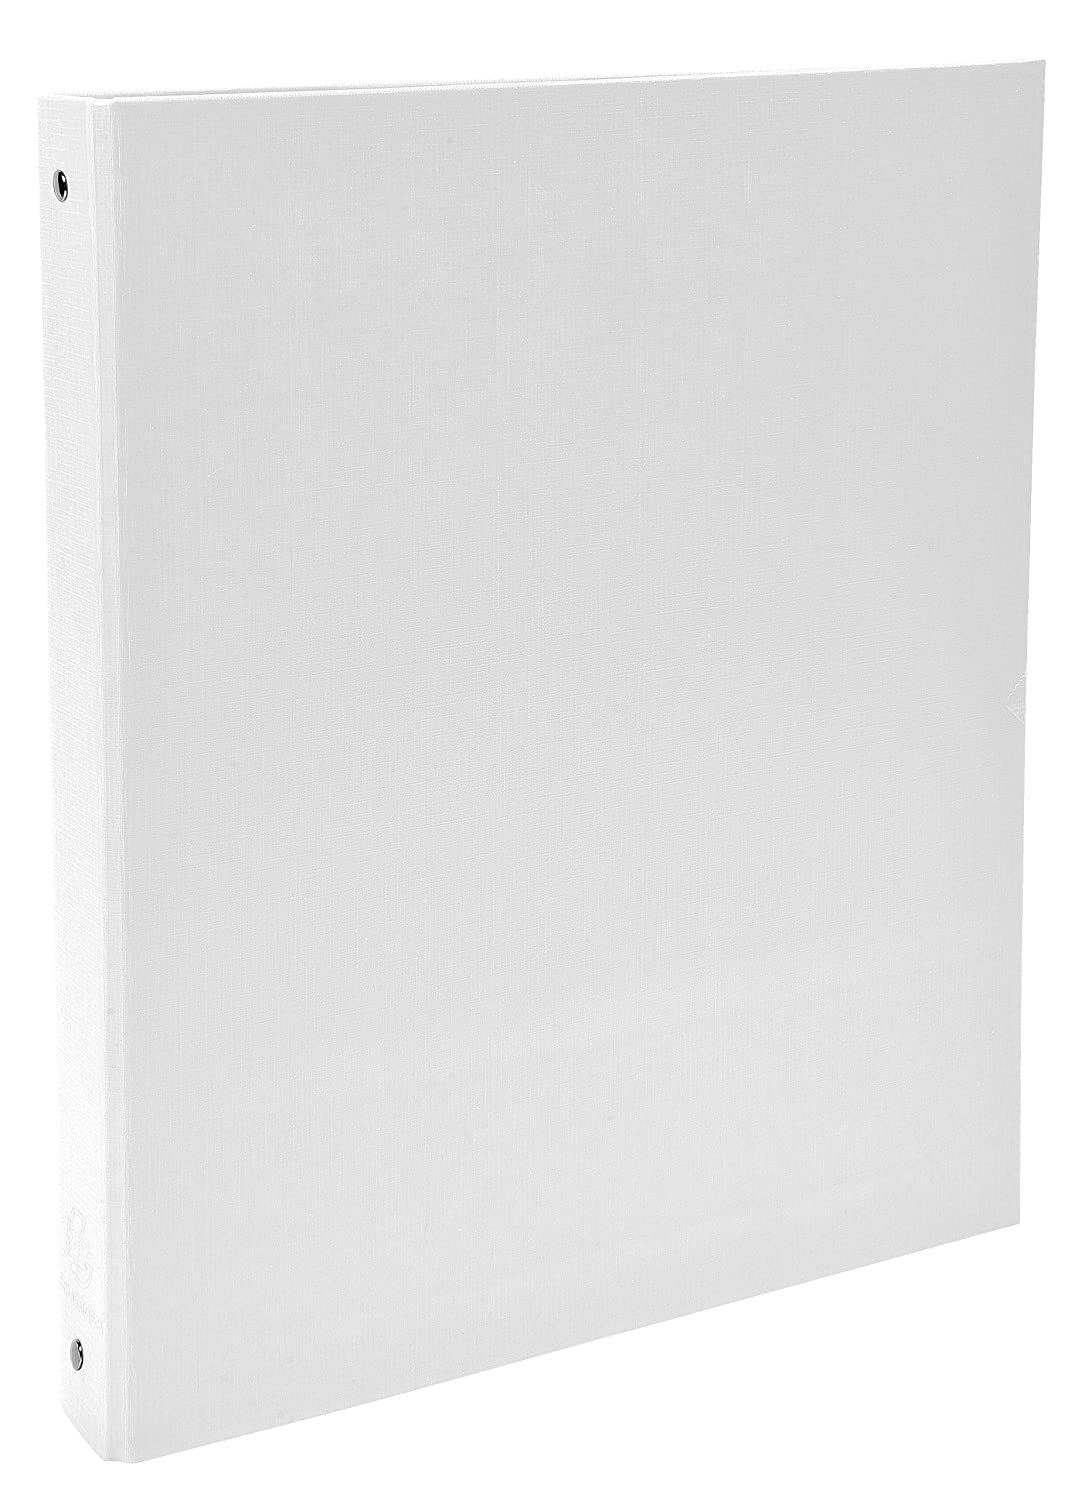 Brause Carpeta con 4 Anillas, Color Blanco, a4 (ExaClair 51378E): Amazon.es: Juguetes y juegos